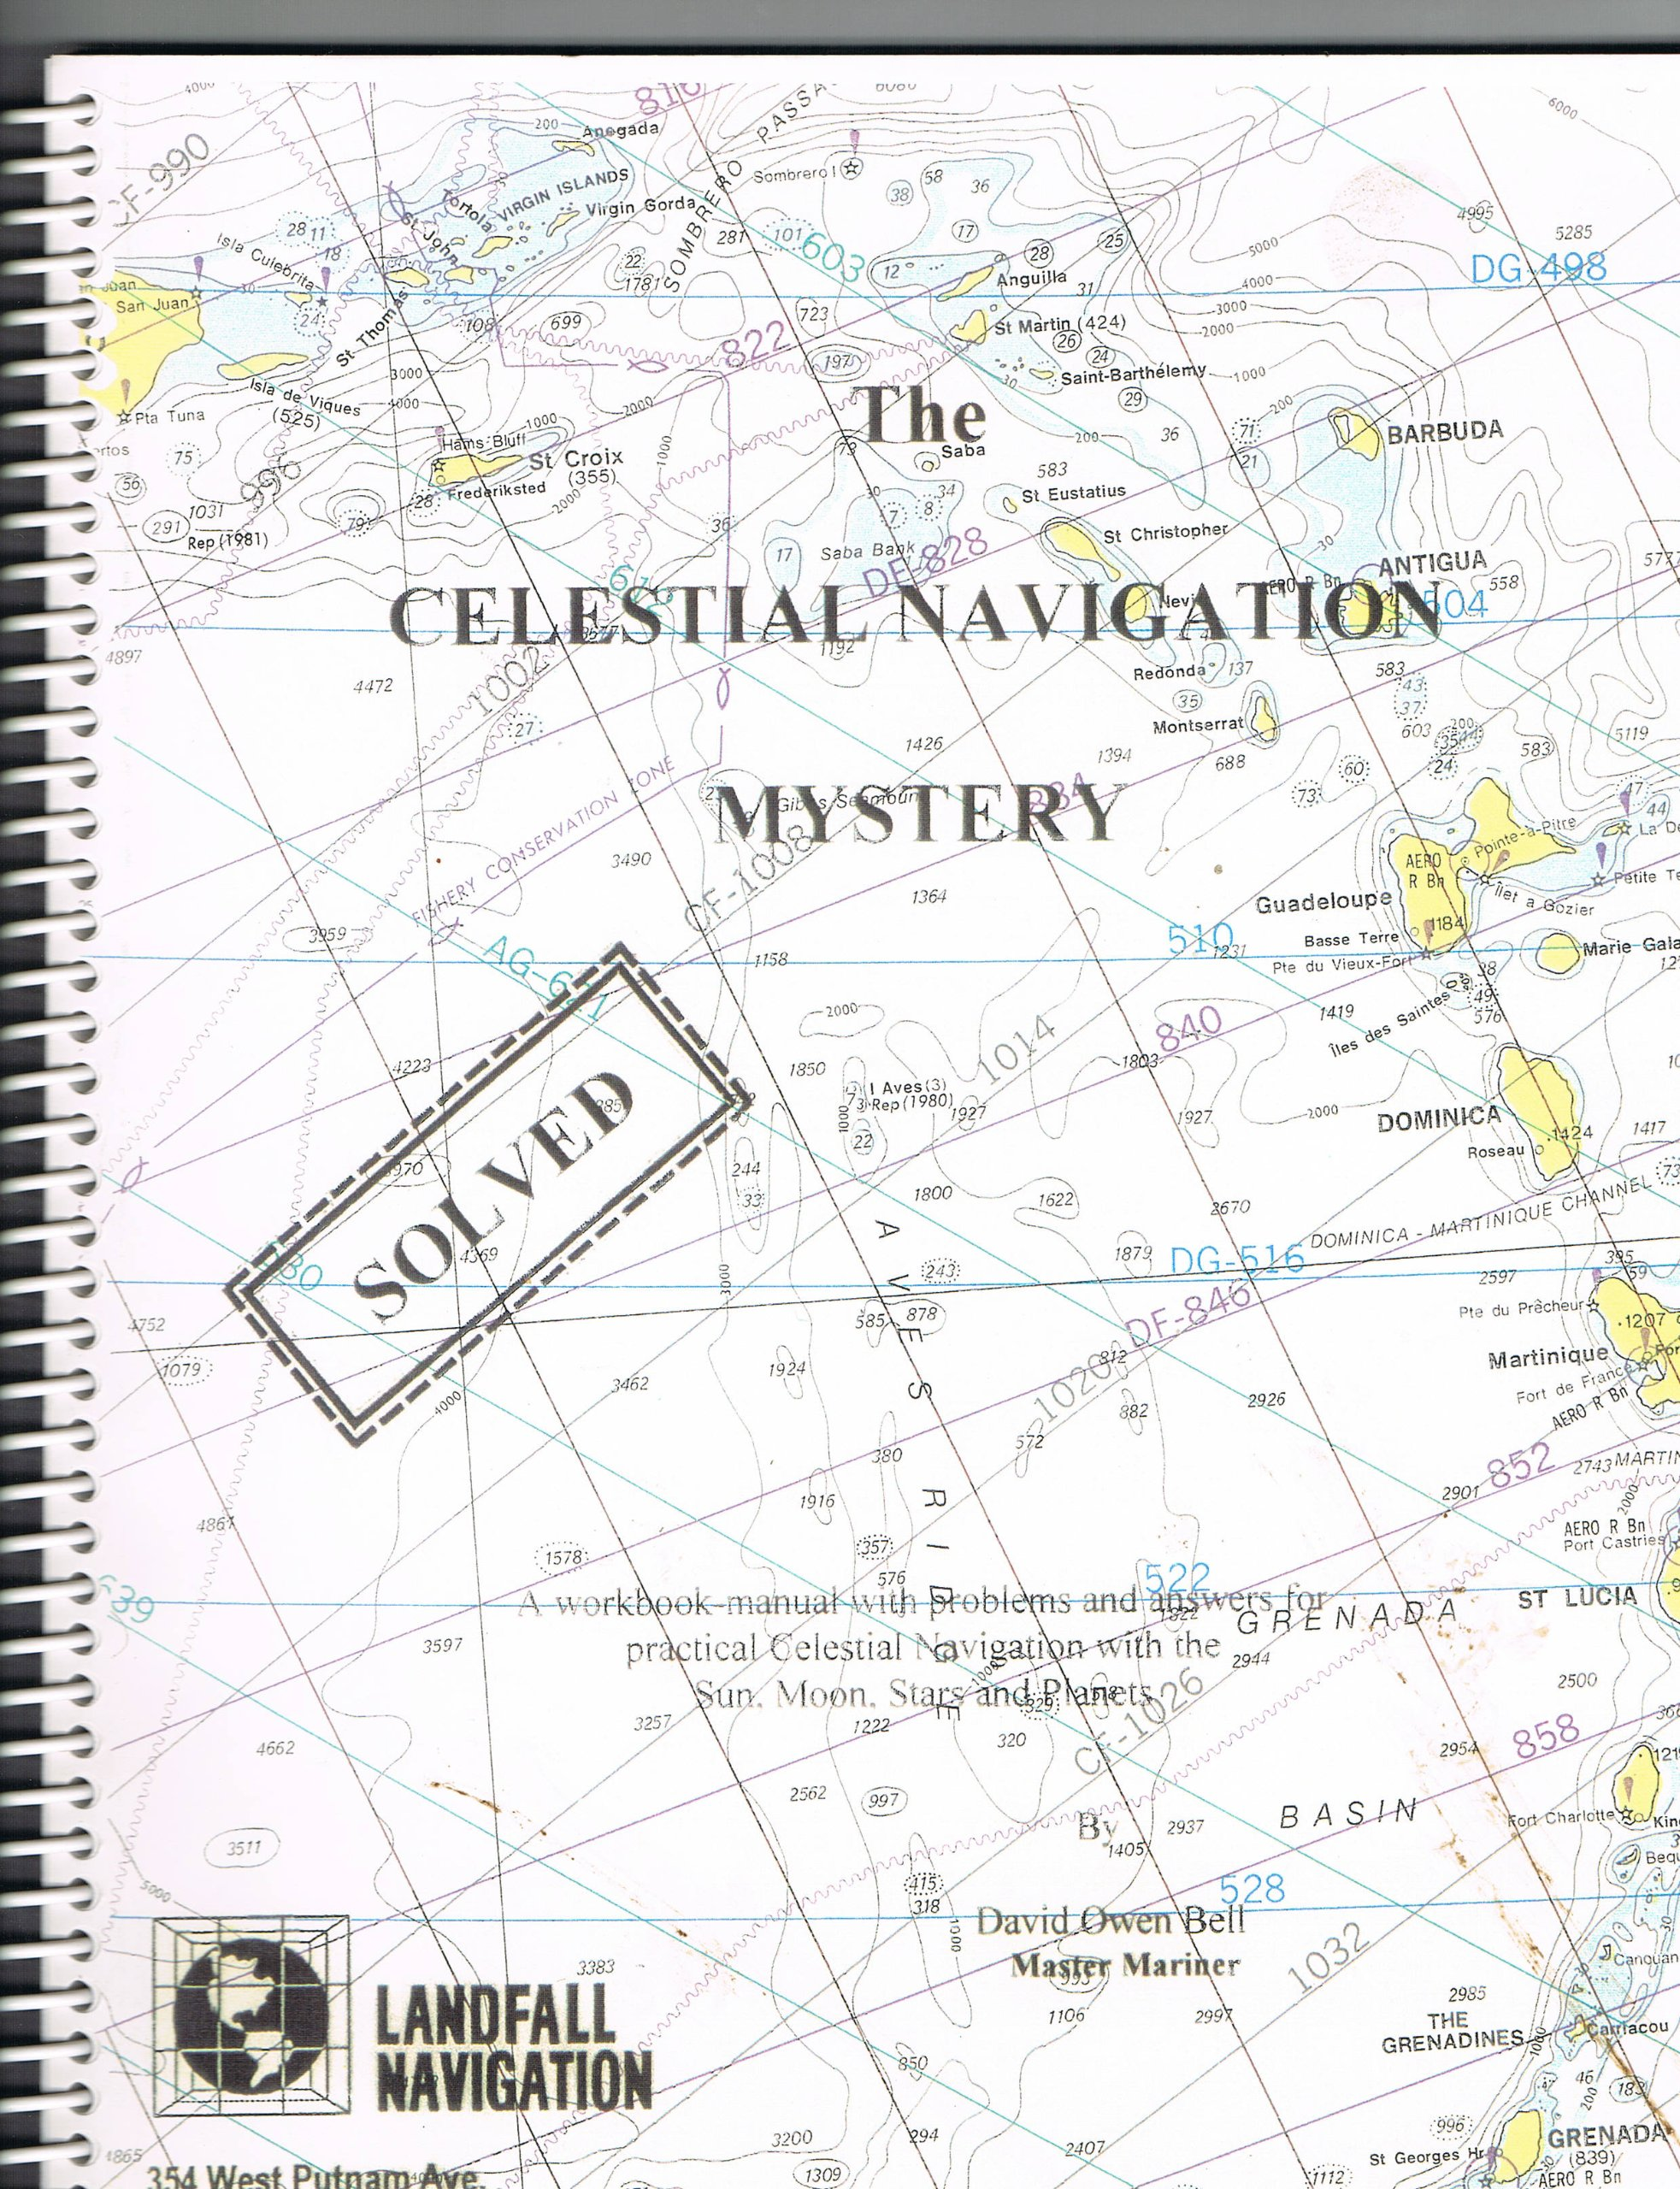 The celestial navigation mystery: Solved : a workbook-manual with